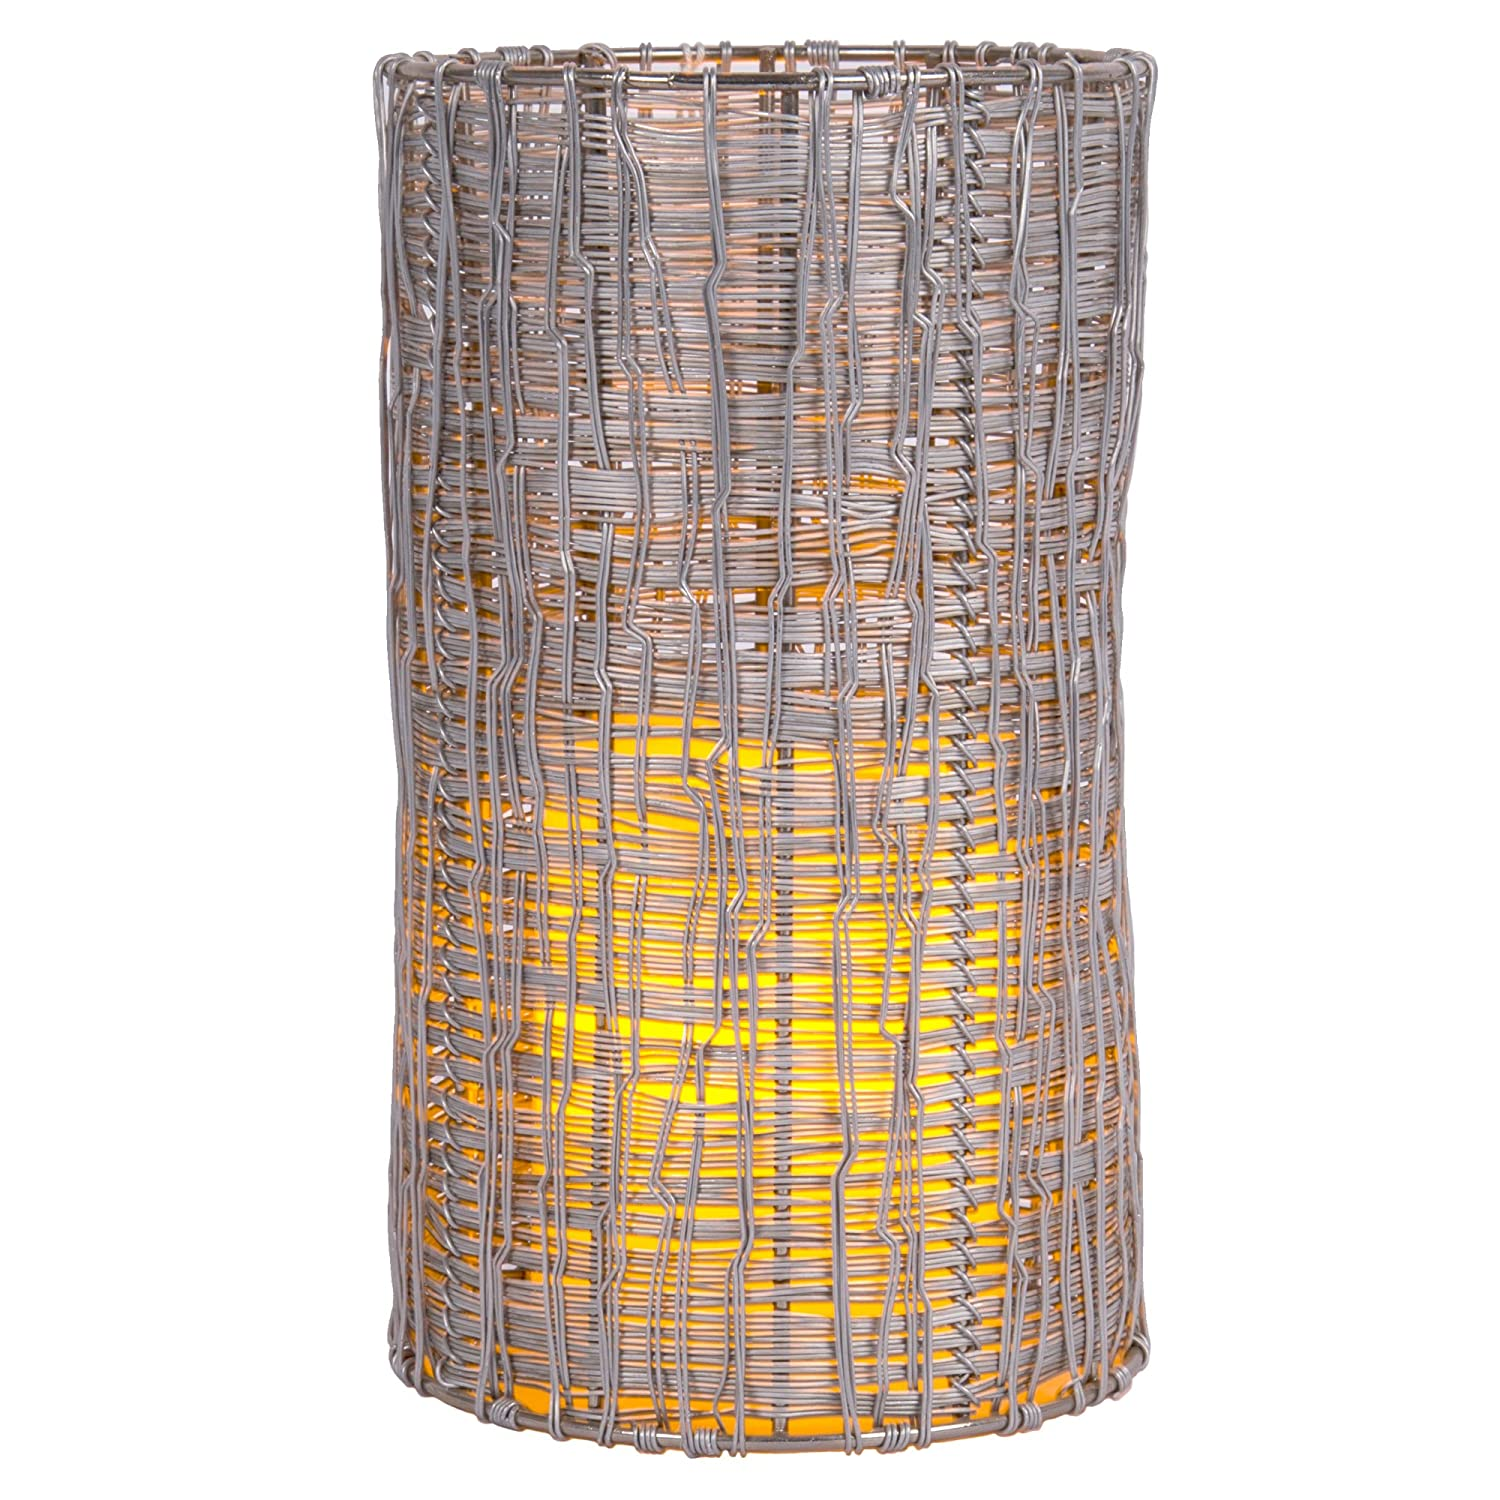 Truu Design 8 inches, Square Metal Candle Shade, Silver CTG Brands 26763